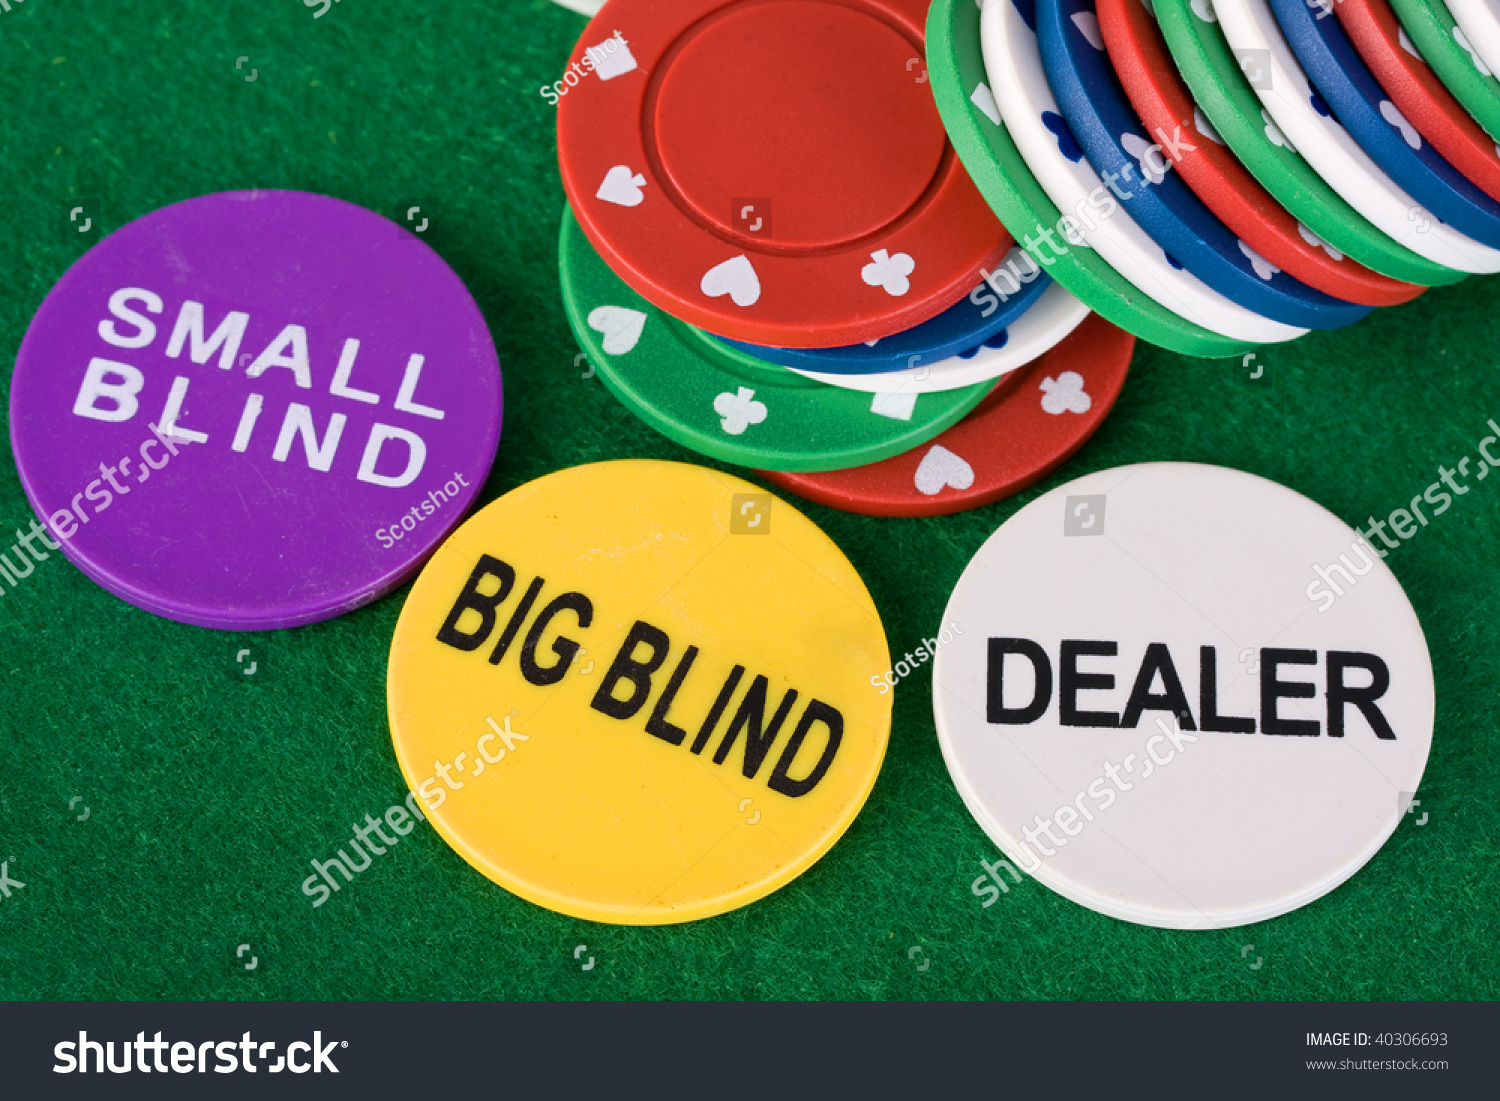 Big blind texas holdem